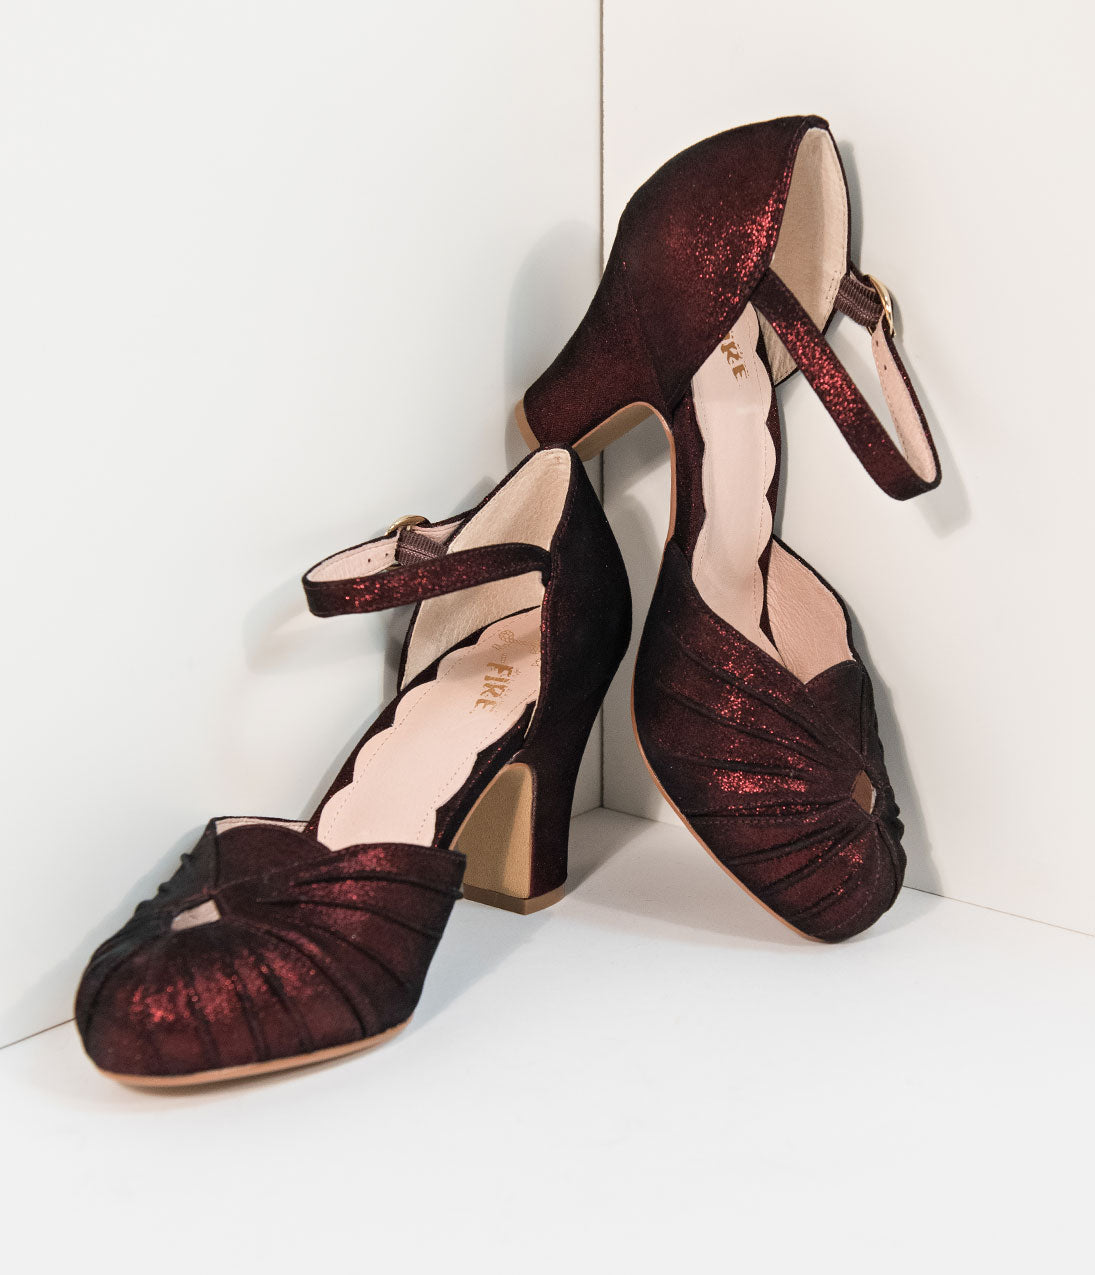 1940s Style Shoes, 40s Shoes Miss L Fire 1940S Style Burgundy Red Sparkle Keyhole Amber Heels $131.00 AT vintagedancer.com